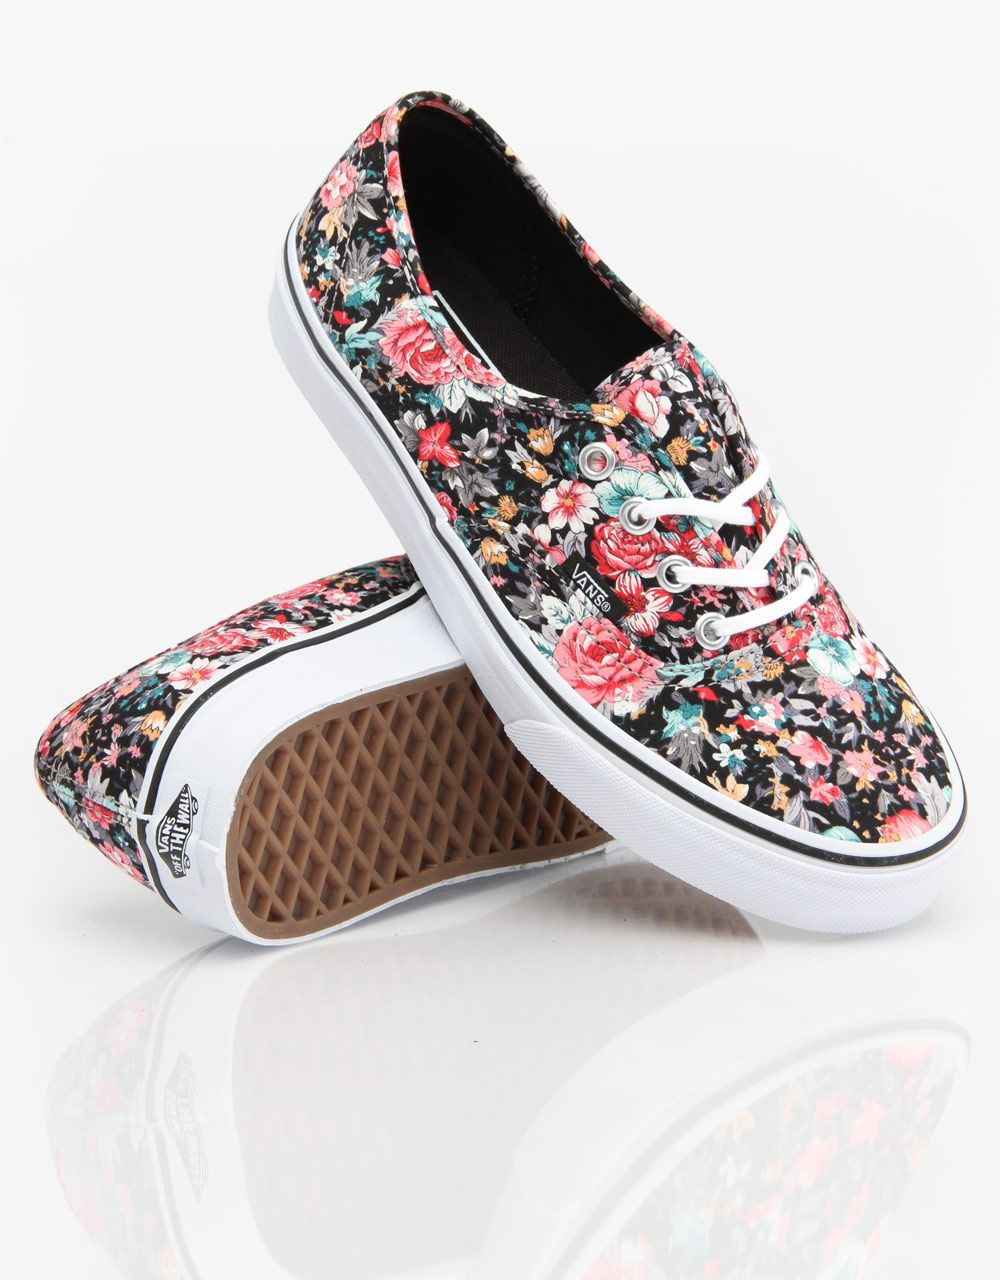 Shoes Skate Multi White Girls Floralblacktrue Authentic Vans PuXZki